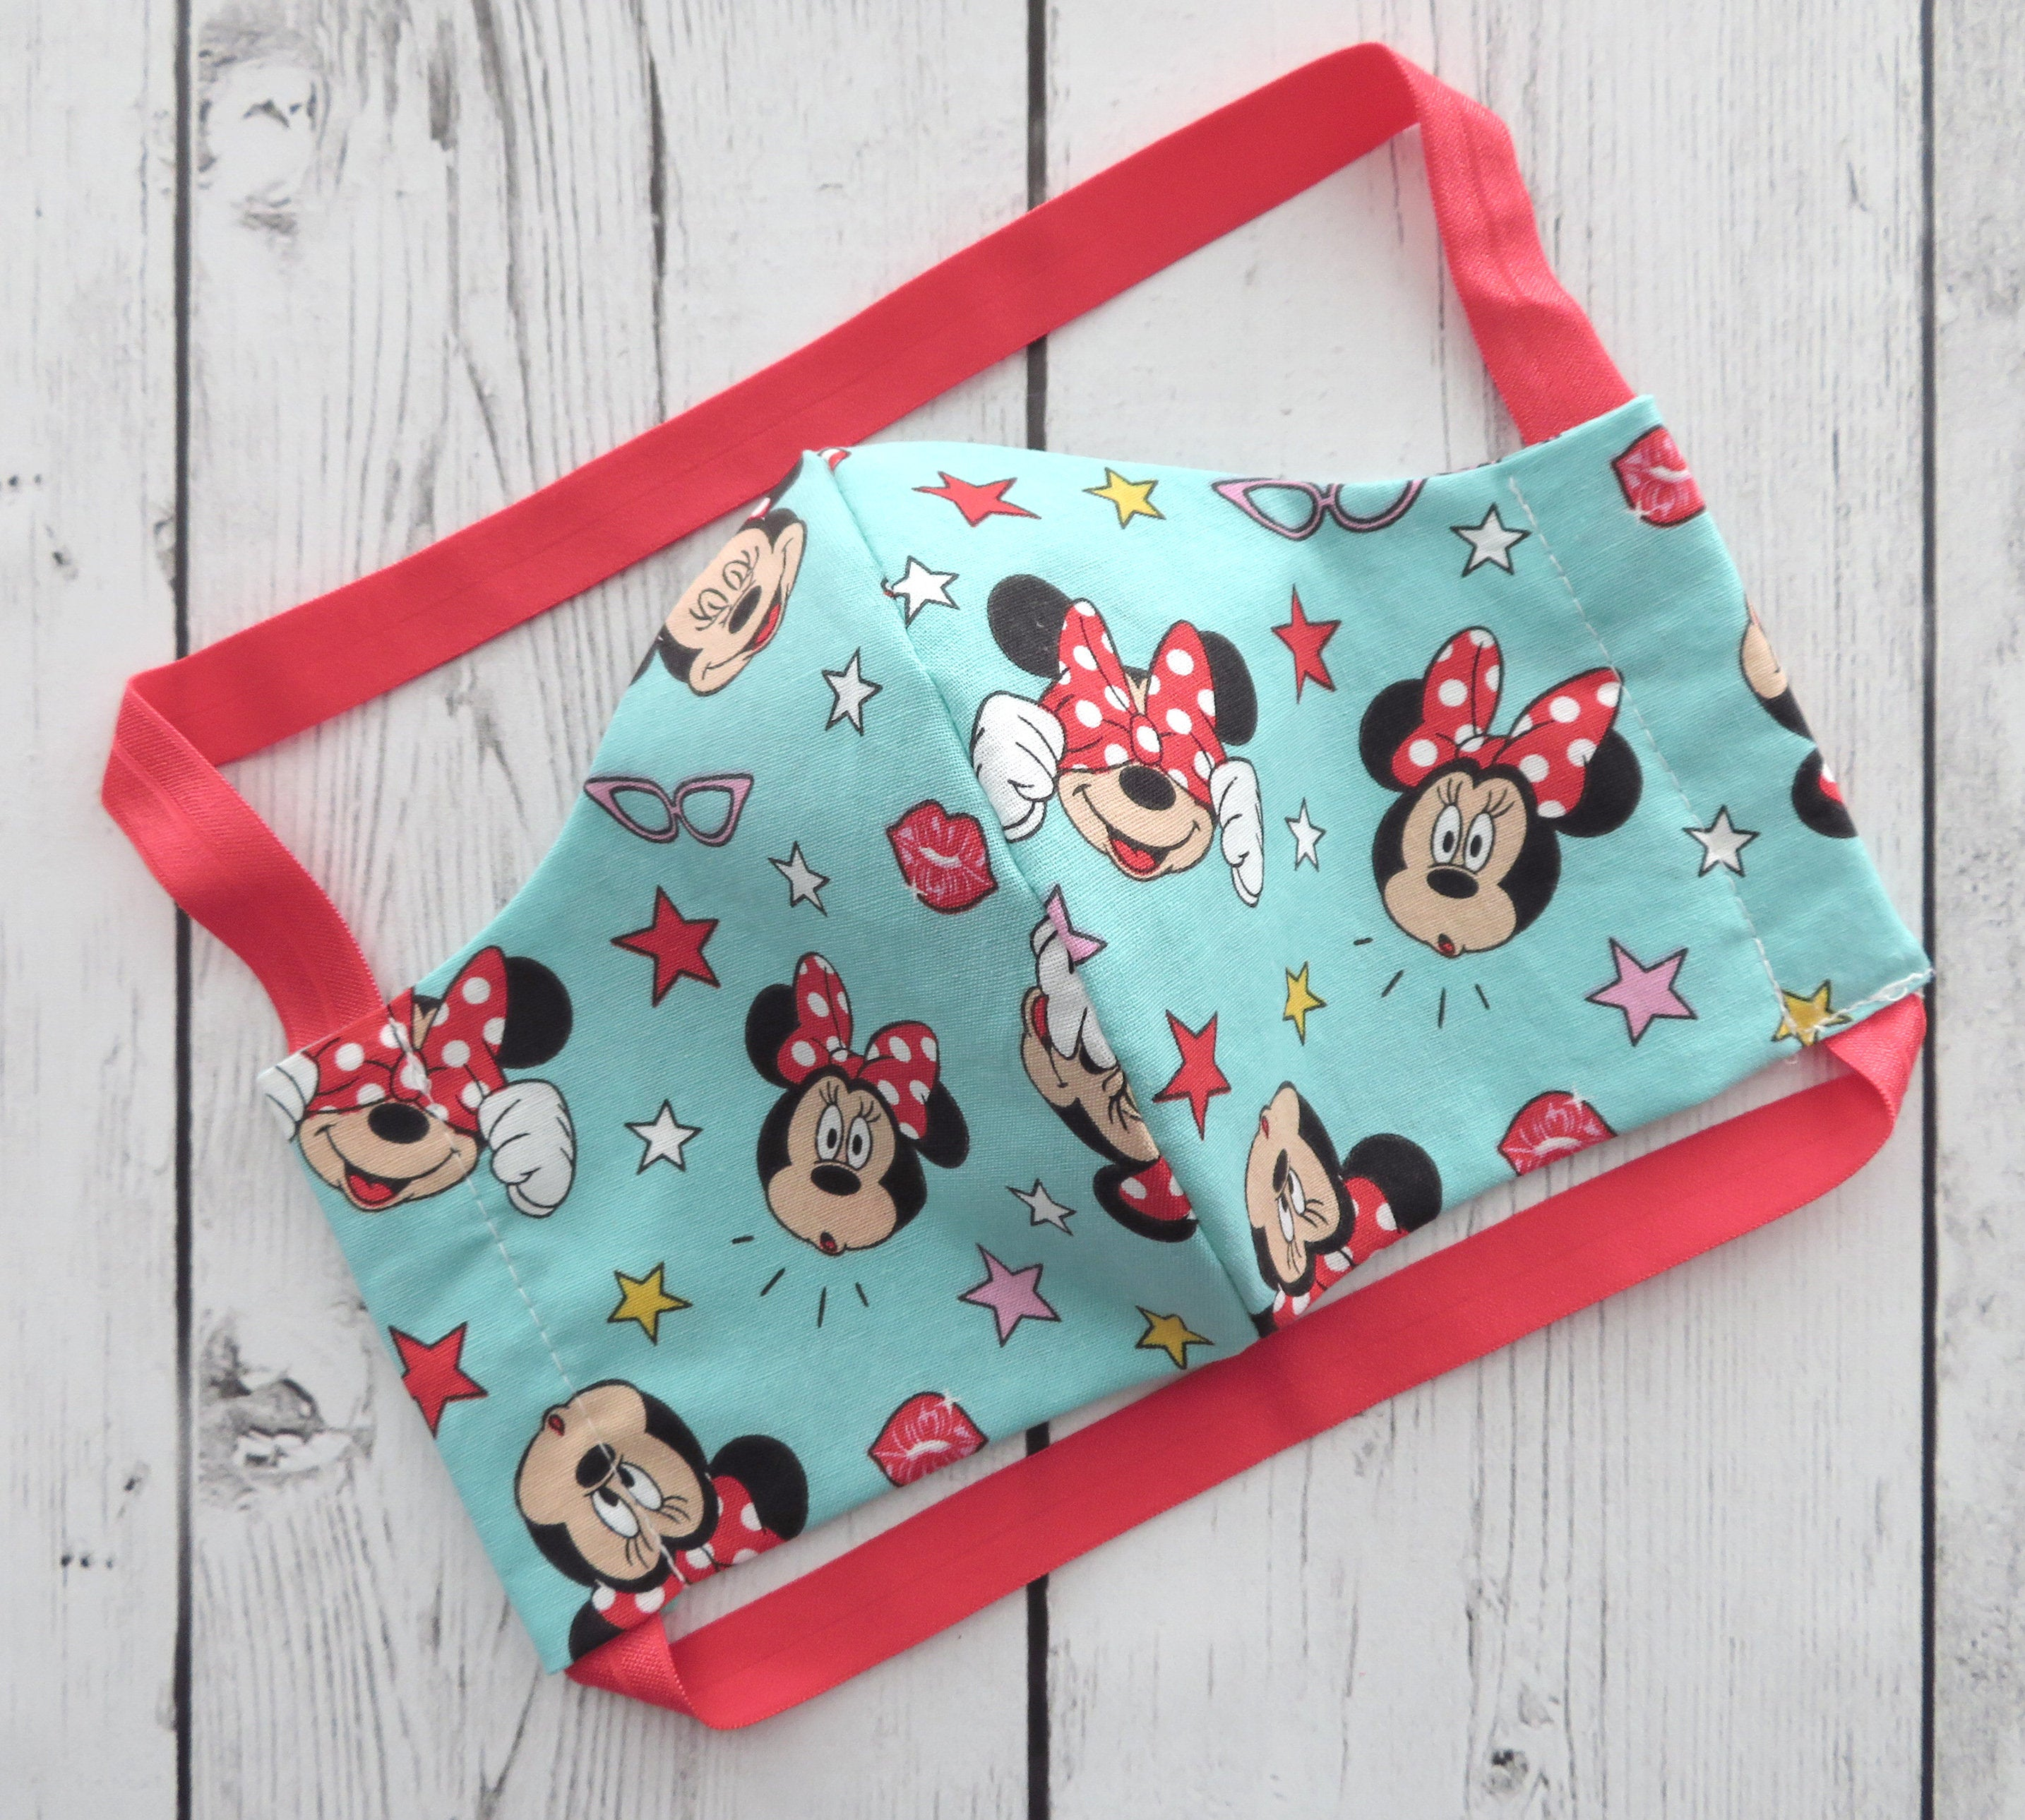 Adult Face Mask in Teal Minnie Mouse print - COMFORTABLE face mask, handmade cotton face mask for adult, washable and re-usable, patterned